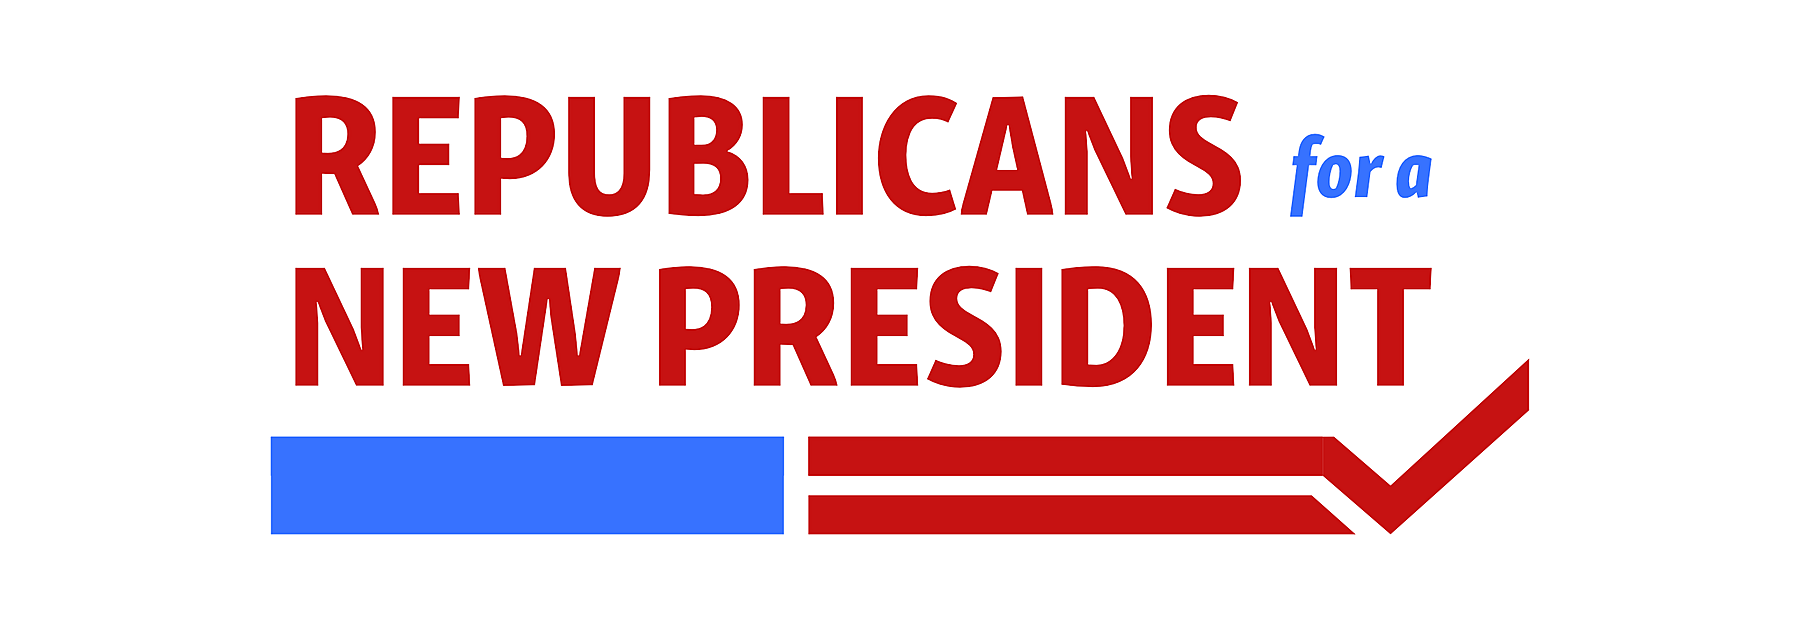 Stand Up Republic: Republicans for a New President